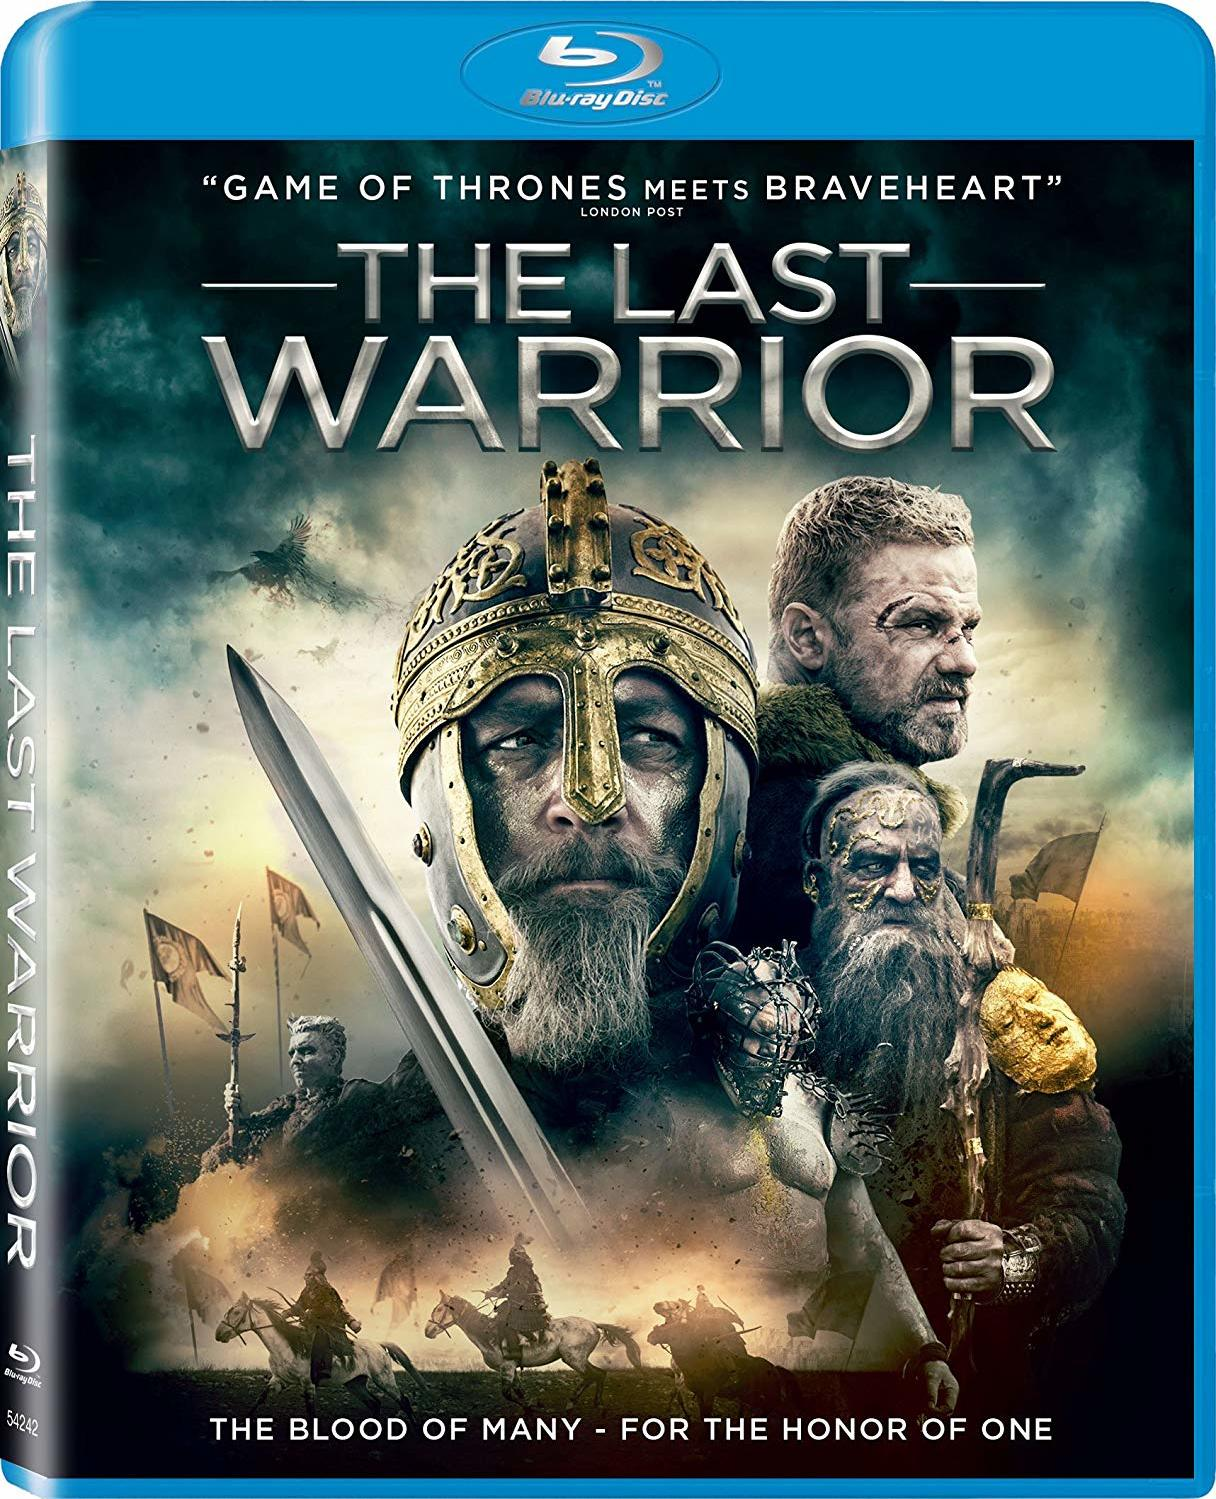 The Last Warrior (Blu-ray)(Region A)